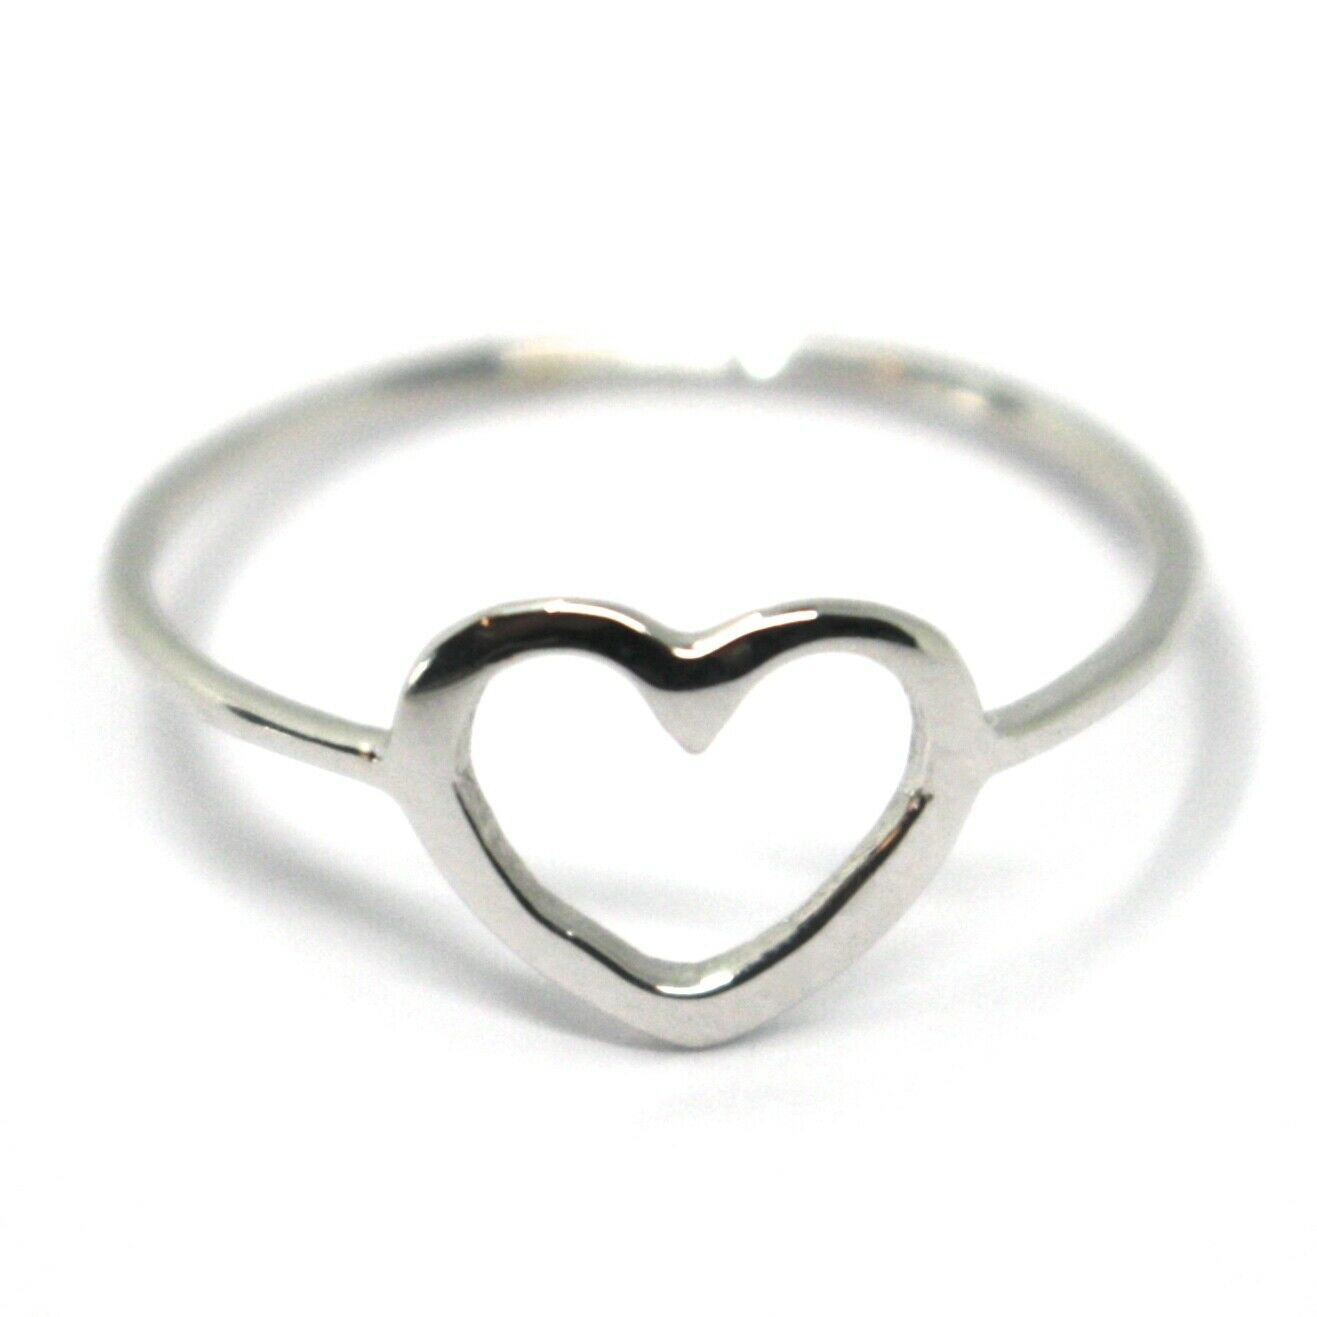 SOLID 18K WHITE GOLD HEART LOVE RING, 10mm DIAMETER FLAT HEART CENTRAL, SMOOTH